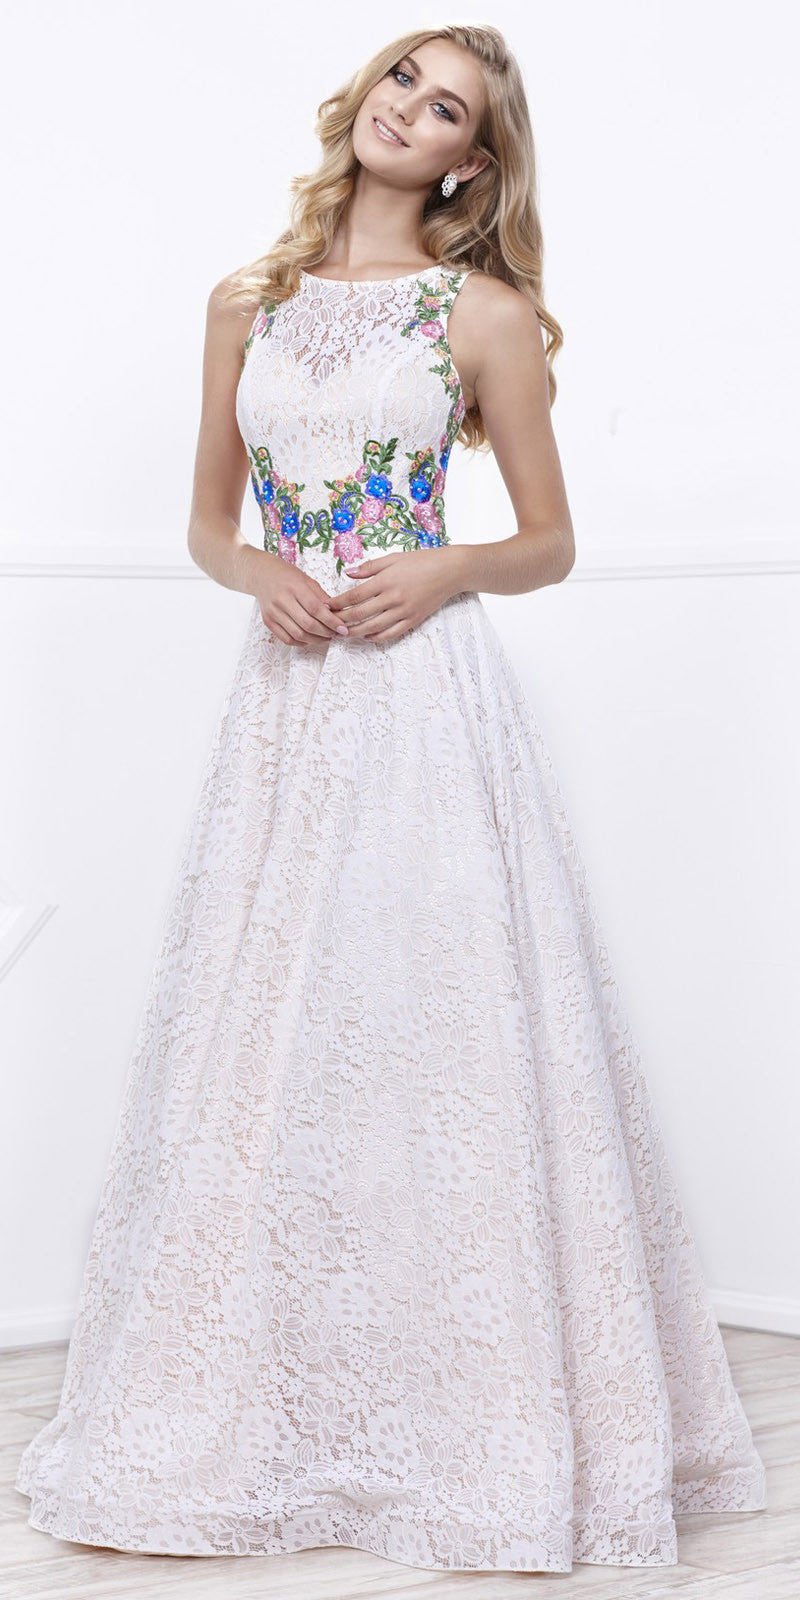 IvoryGold Sleeveless Lace Overlay Embroidered Ball Gown Open Back